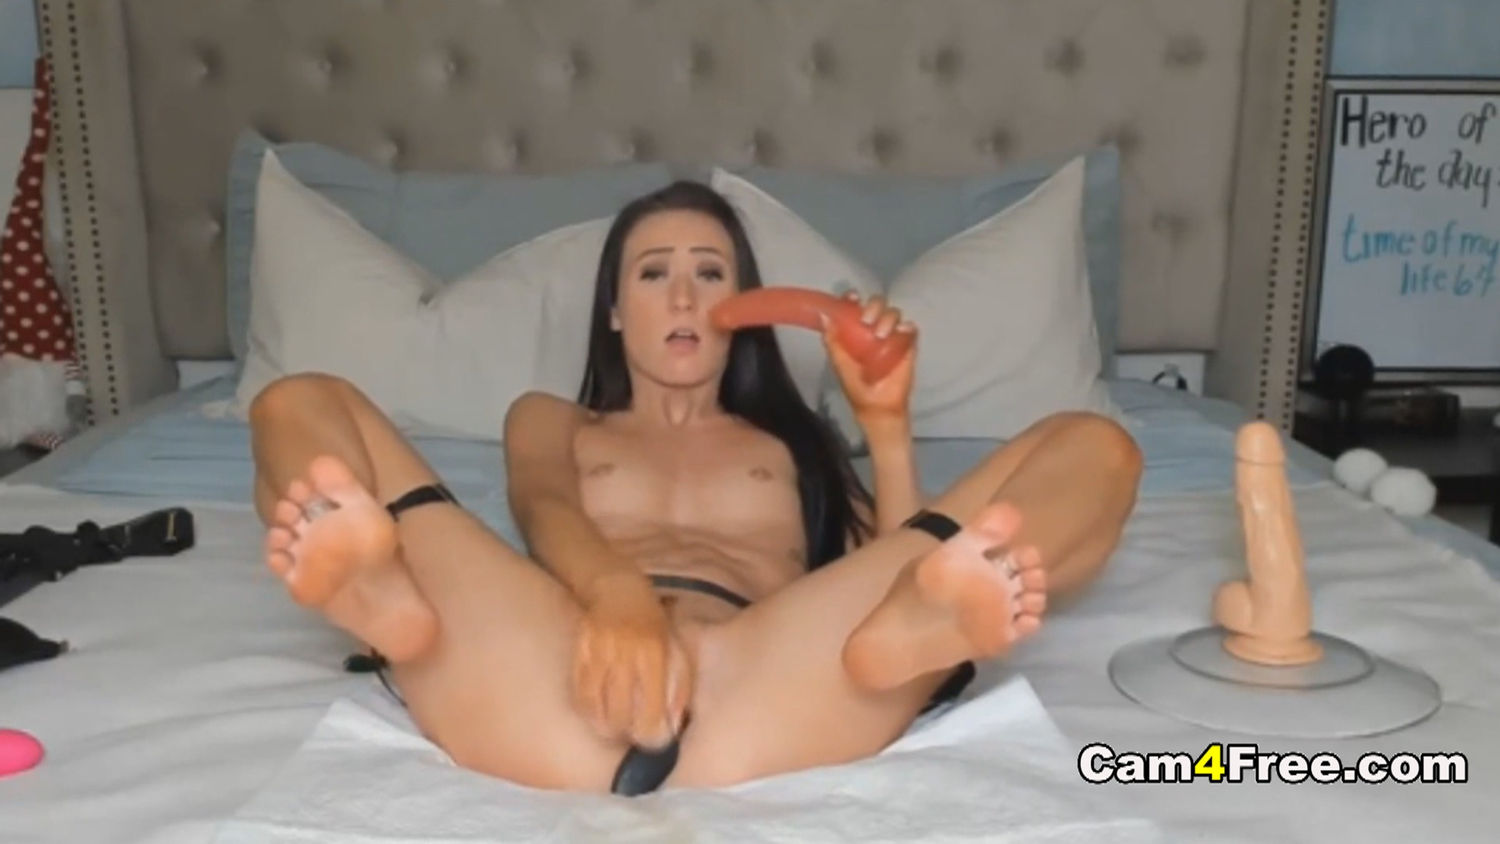 Skinny Chick in an Intense Masturbation